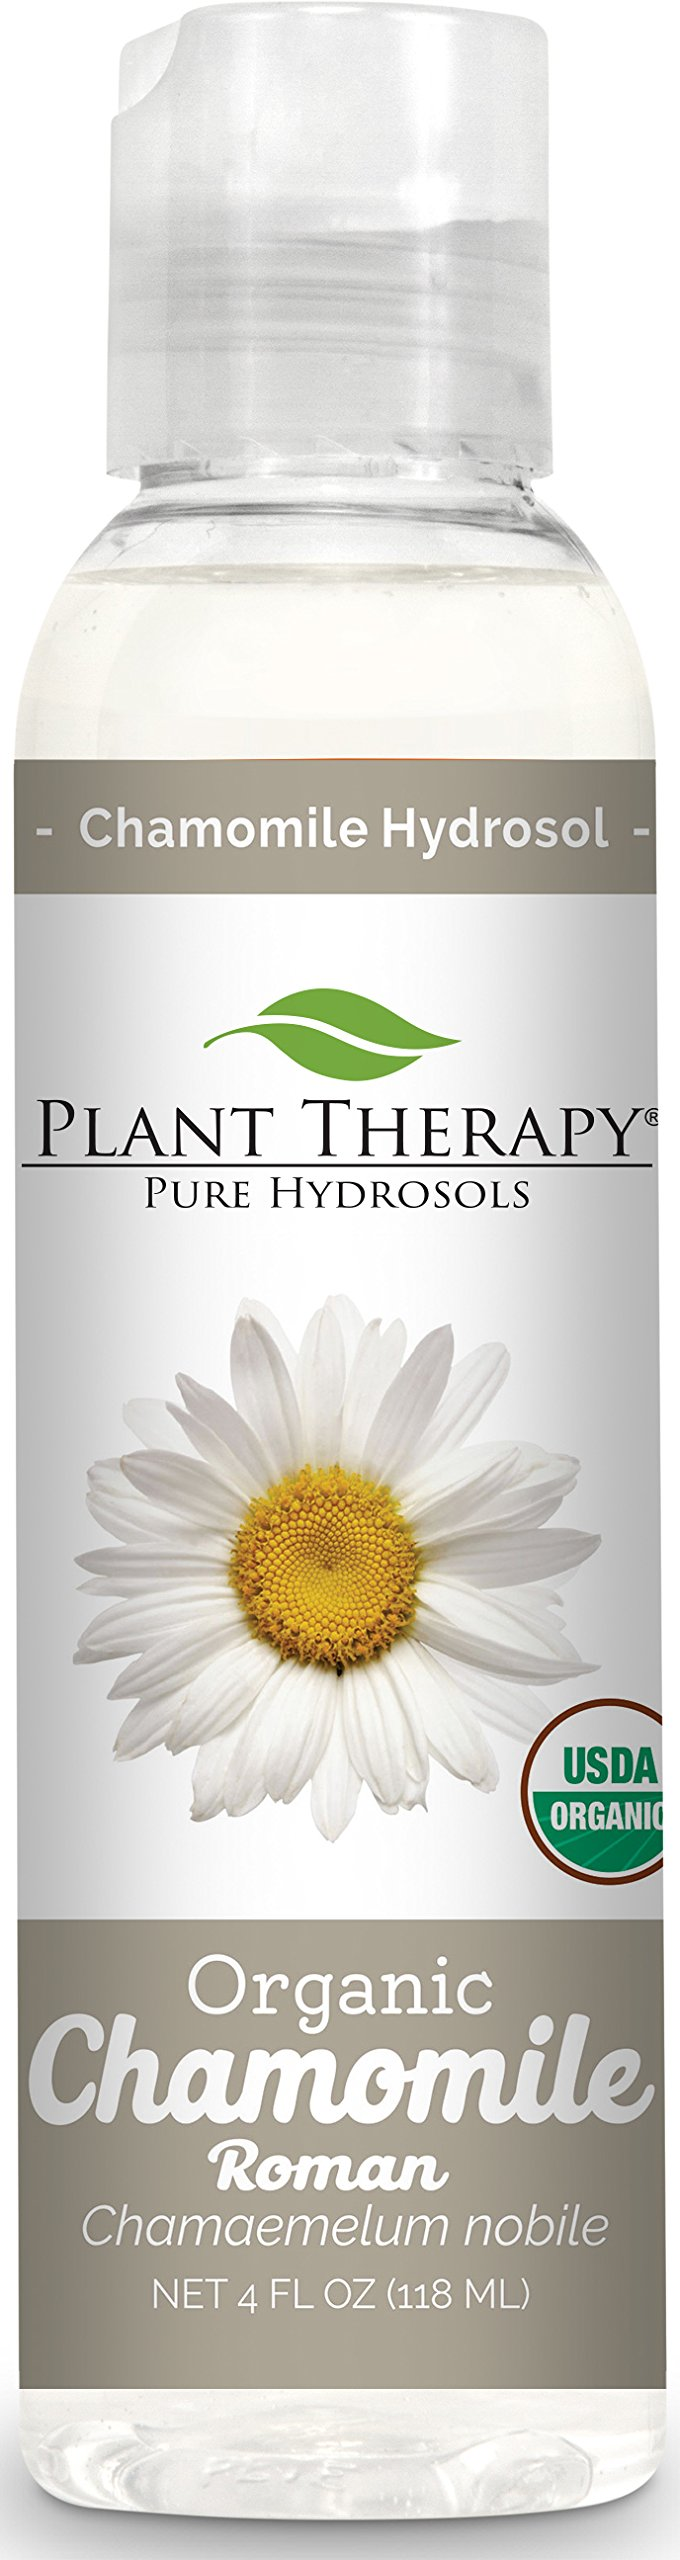 Plant Therapy Organic Roman Chamomile Hydrosol. (Flower Water, Floral Water, Hydrolats, Distillates) Bi-Product of Essential Oils. 4 Ounce.